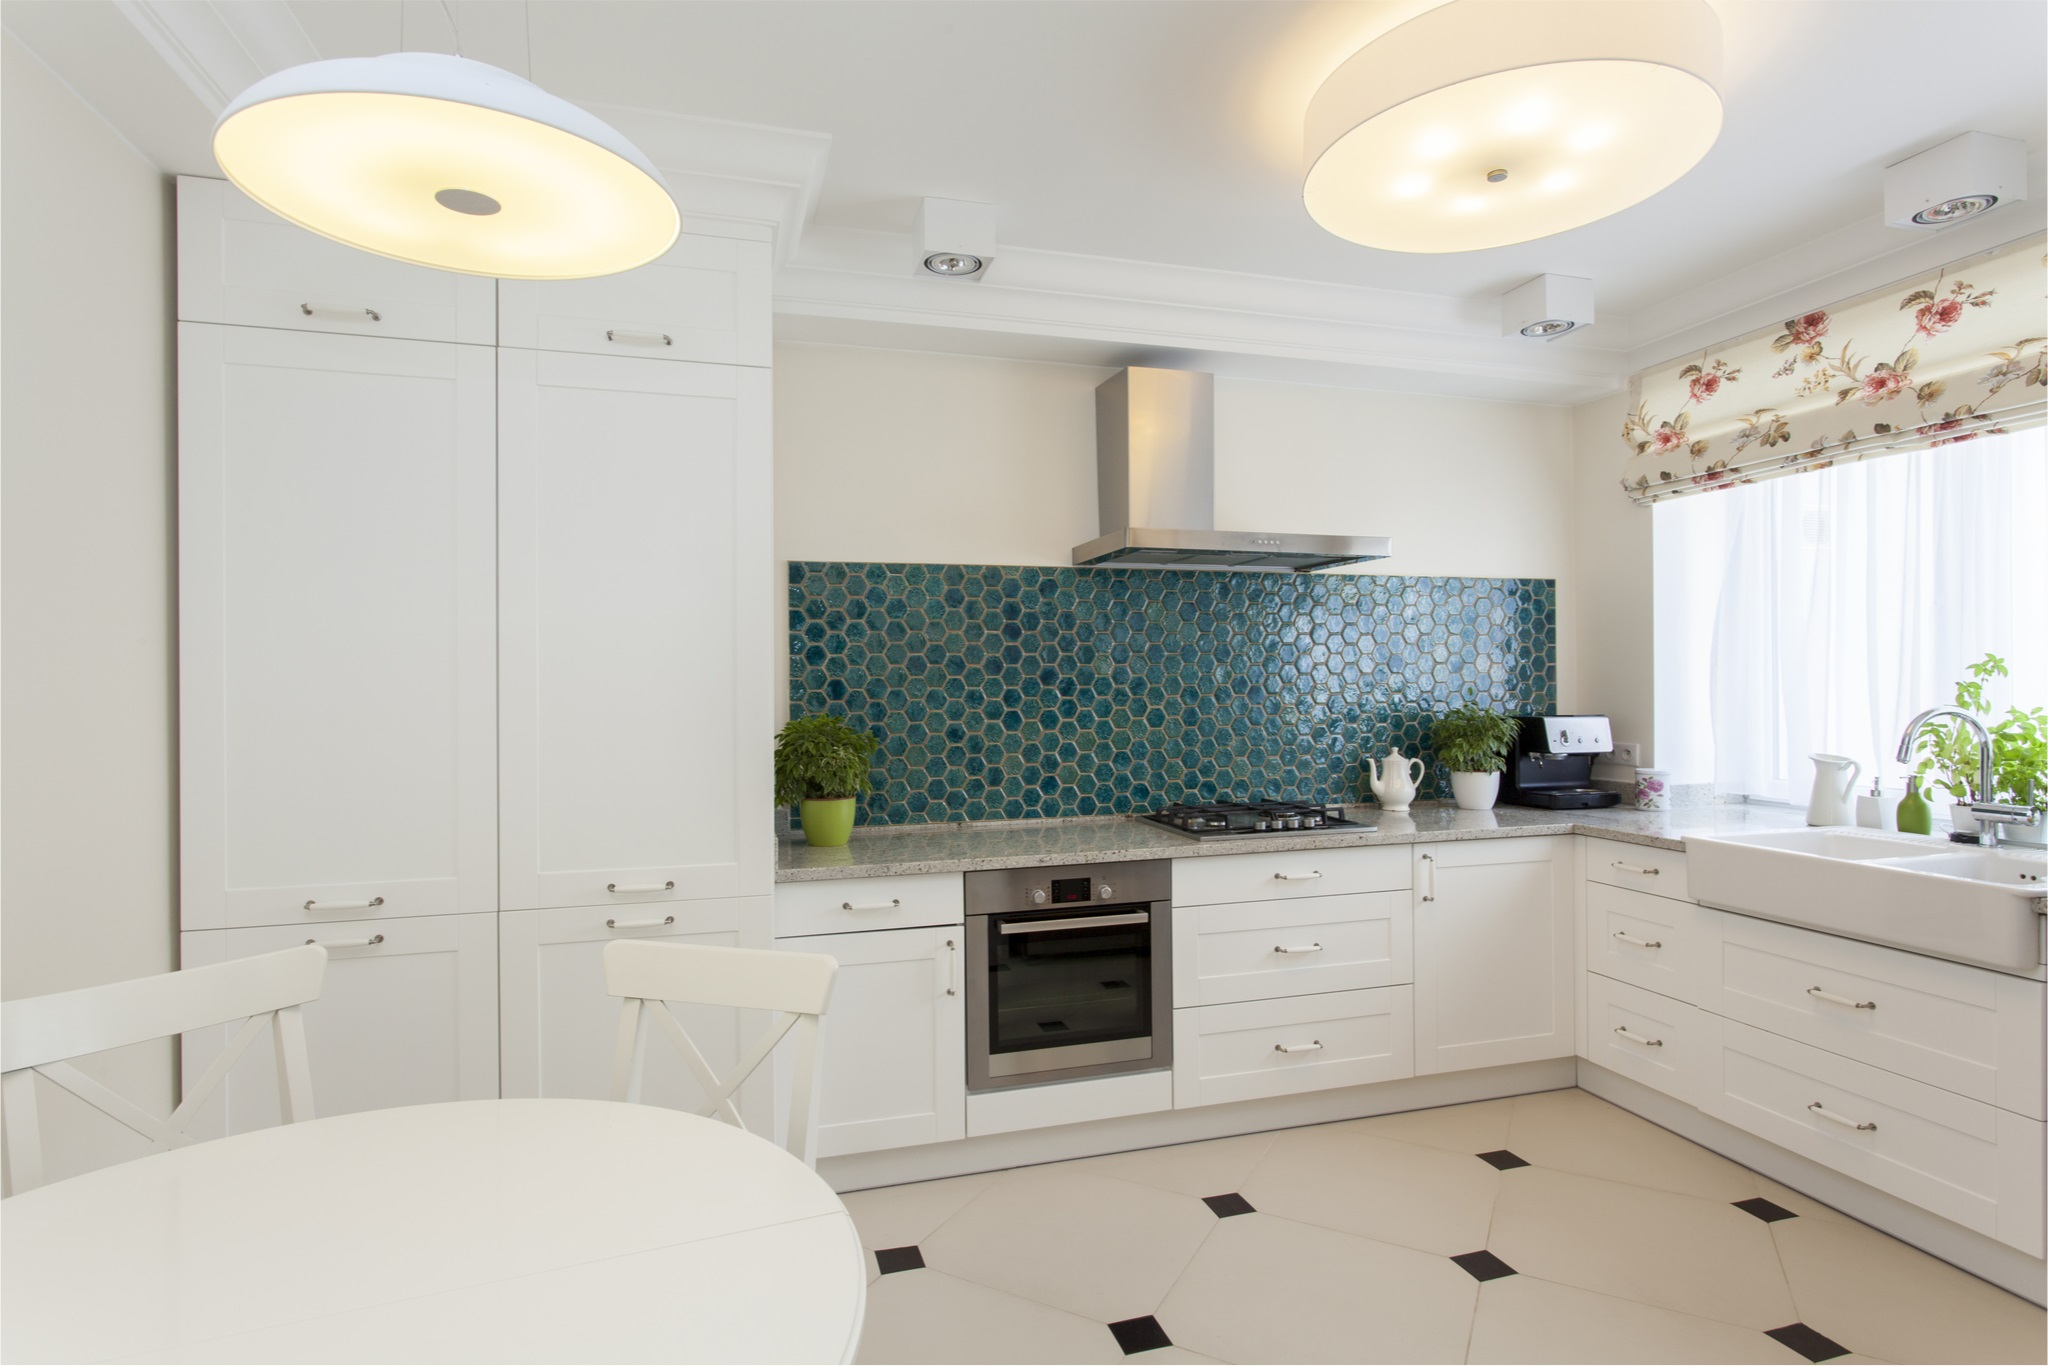 Modular Kitchen Backsplash An Armor For Unwanted Spills